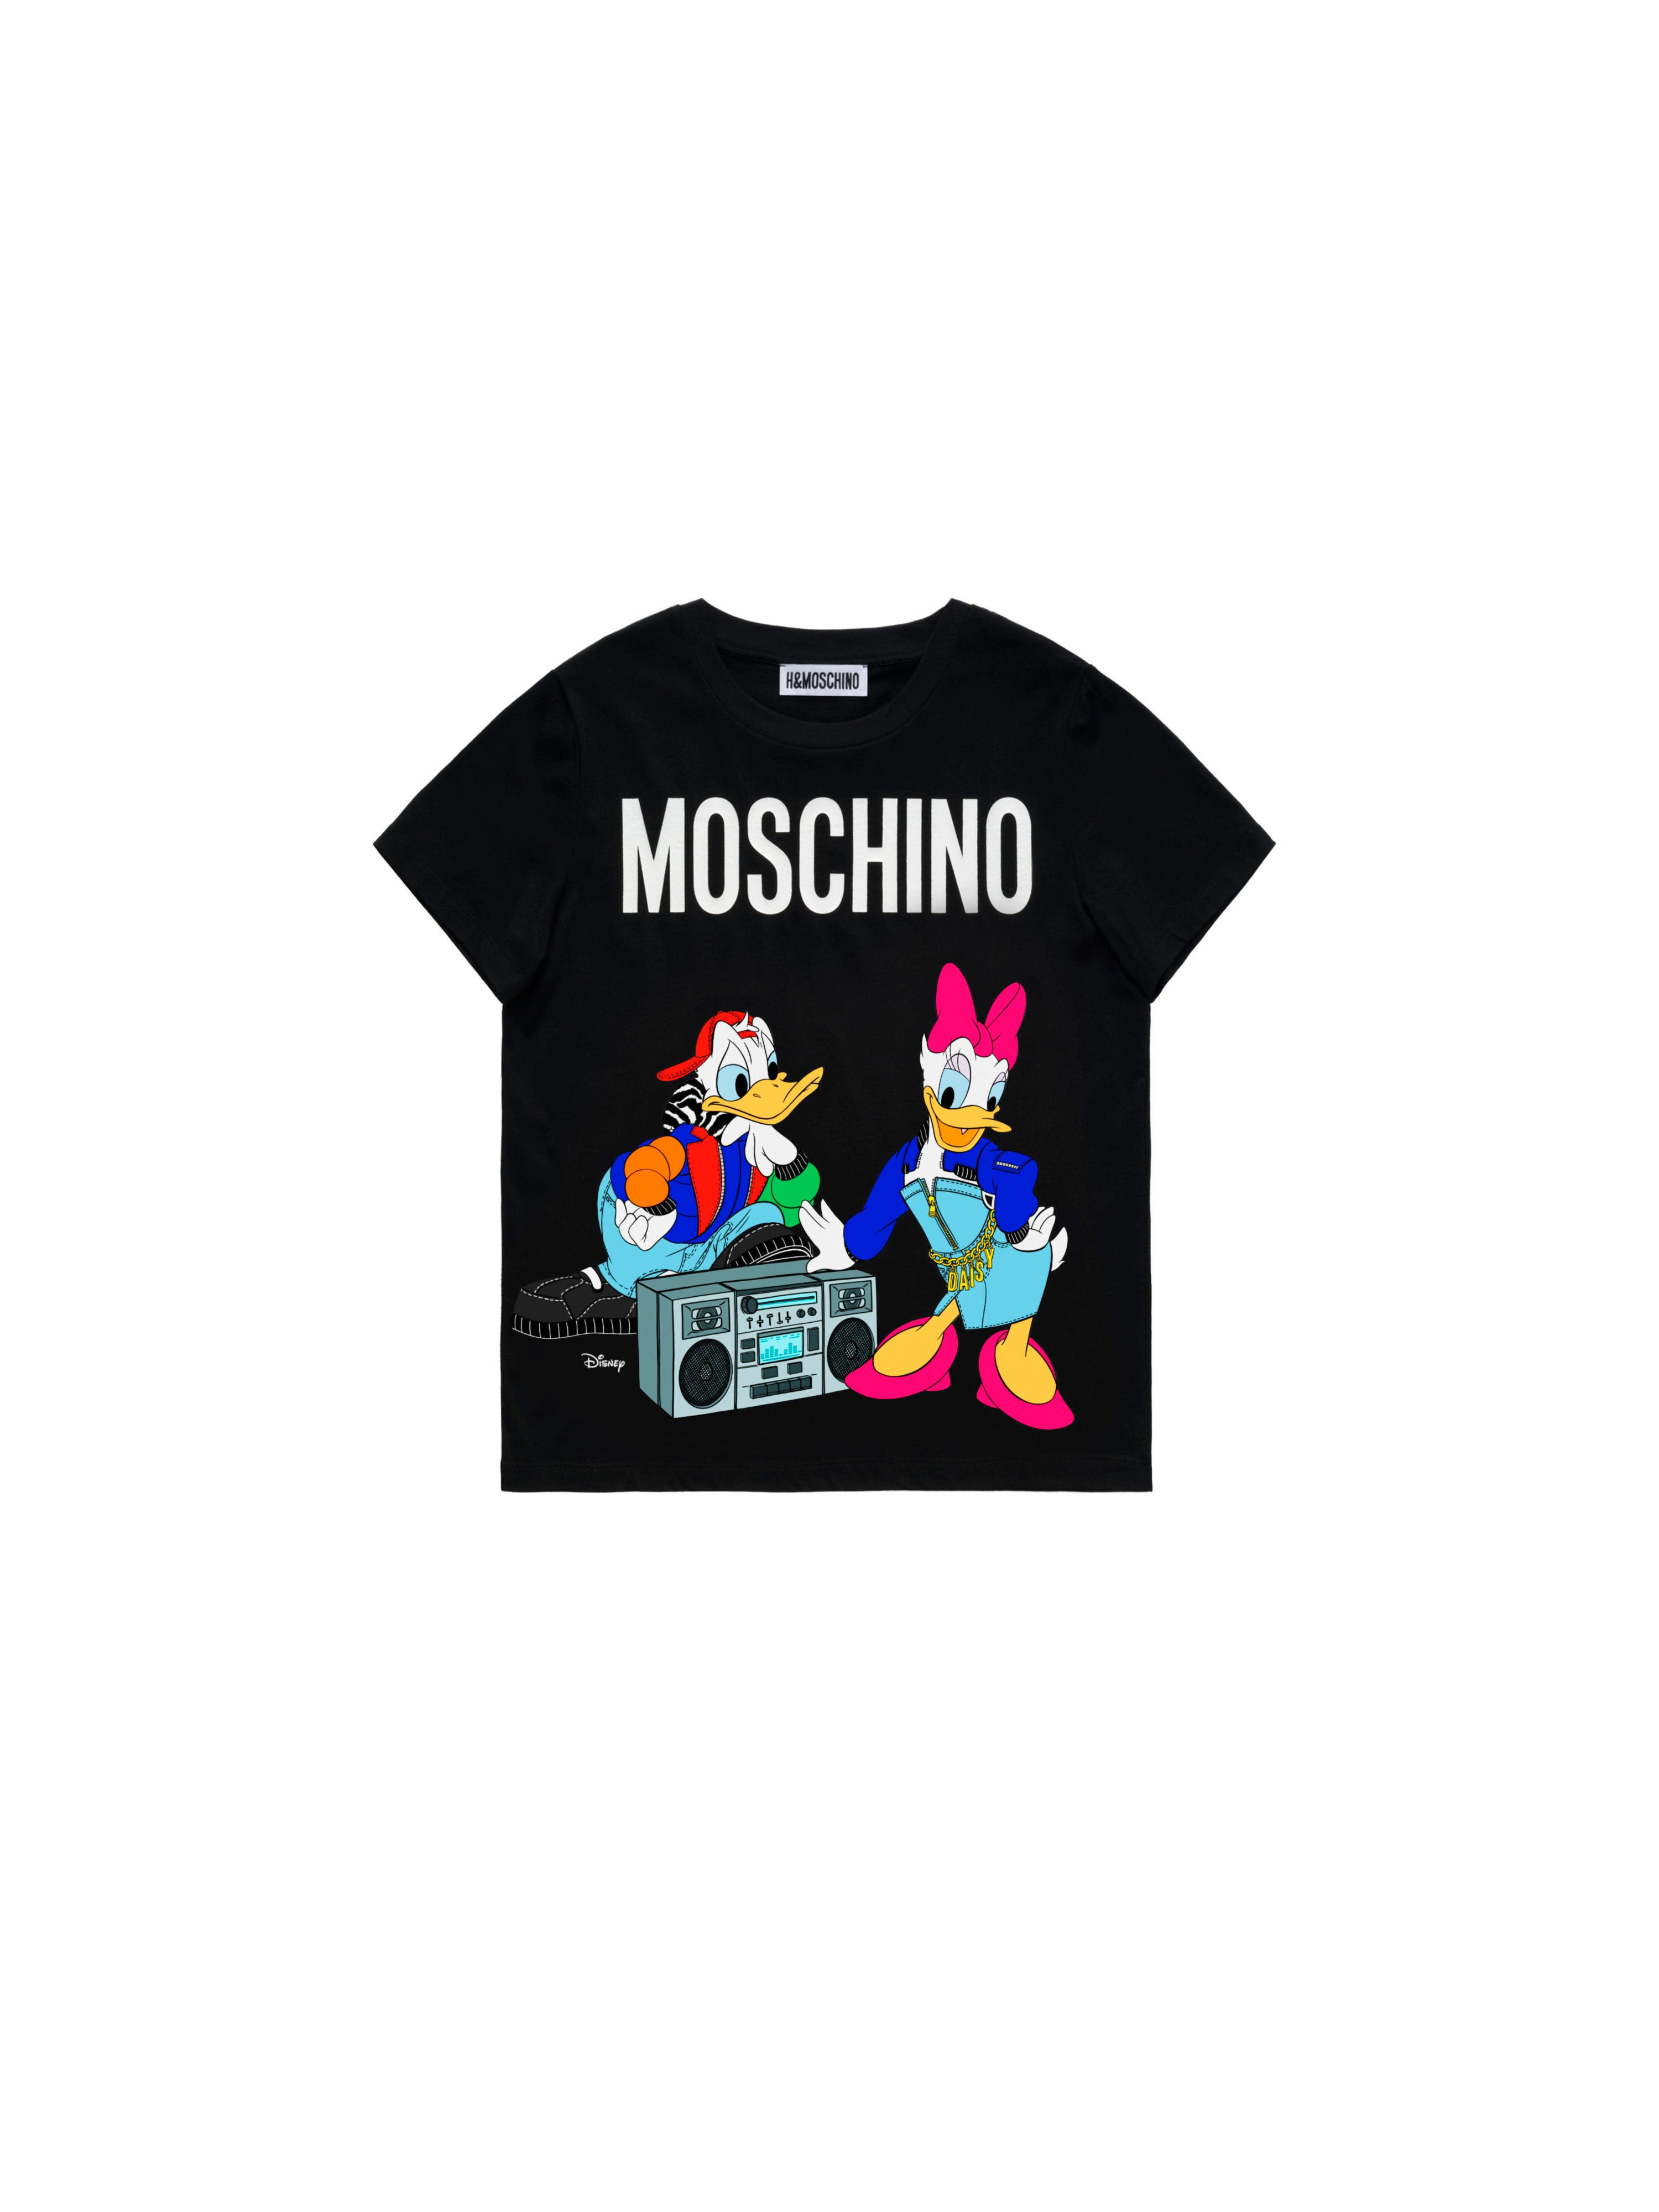 3e77aab52f The HM And Moschino Collab Is Already Selling Out